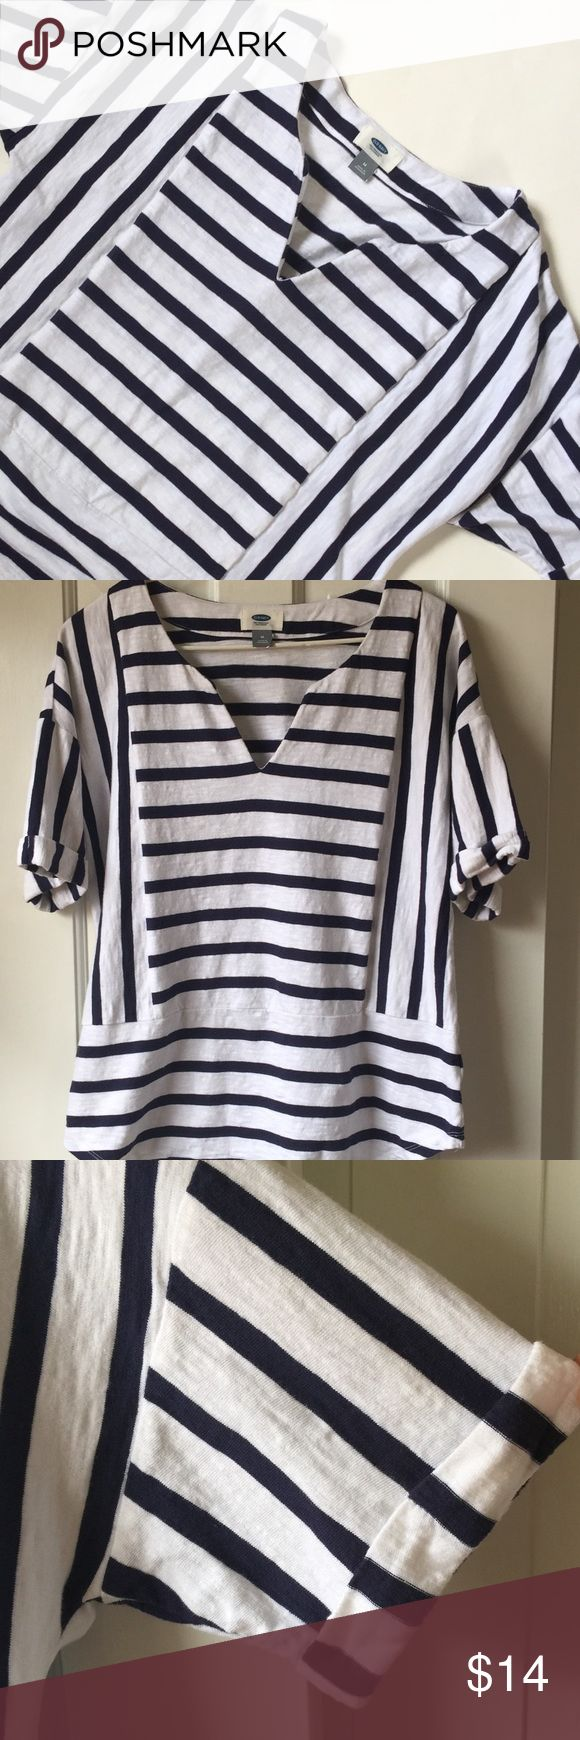 Black and white striped old navy top Great spring time top! Old Navy Tops